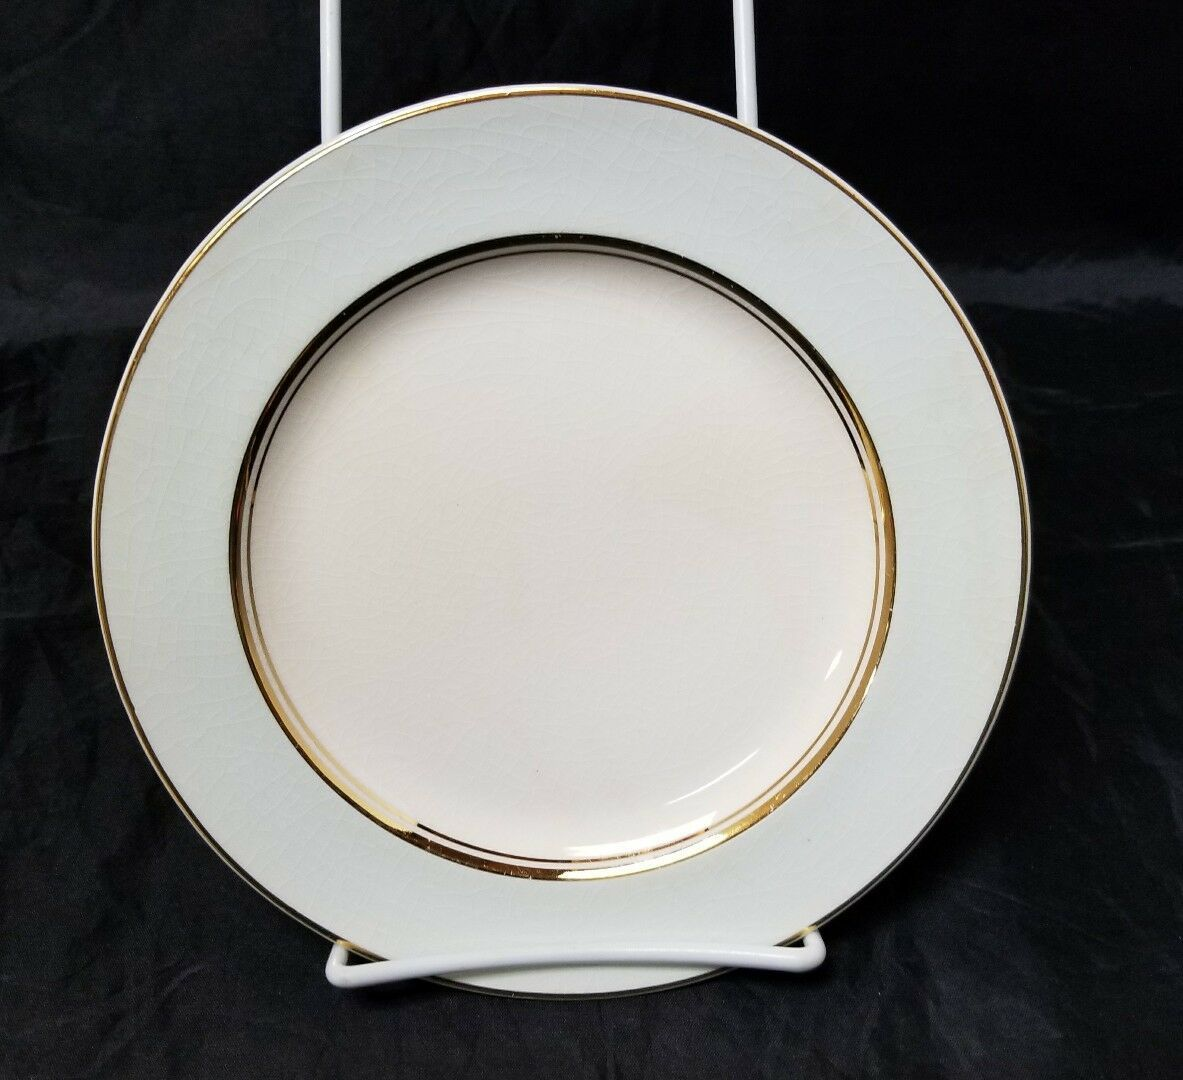 "French Saxon China Co Side Plates Set of 3 7.25"" White & Lgt Blue Pottery Salad"